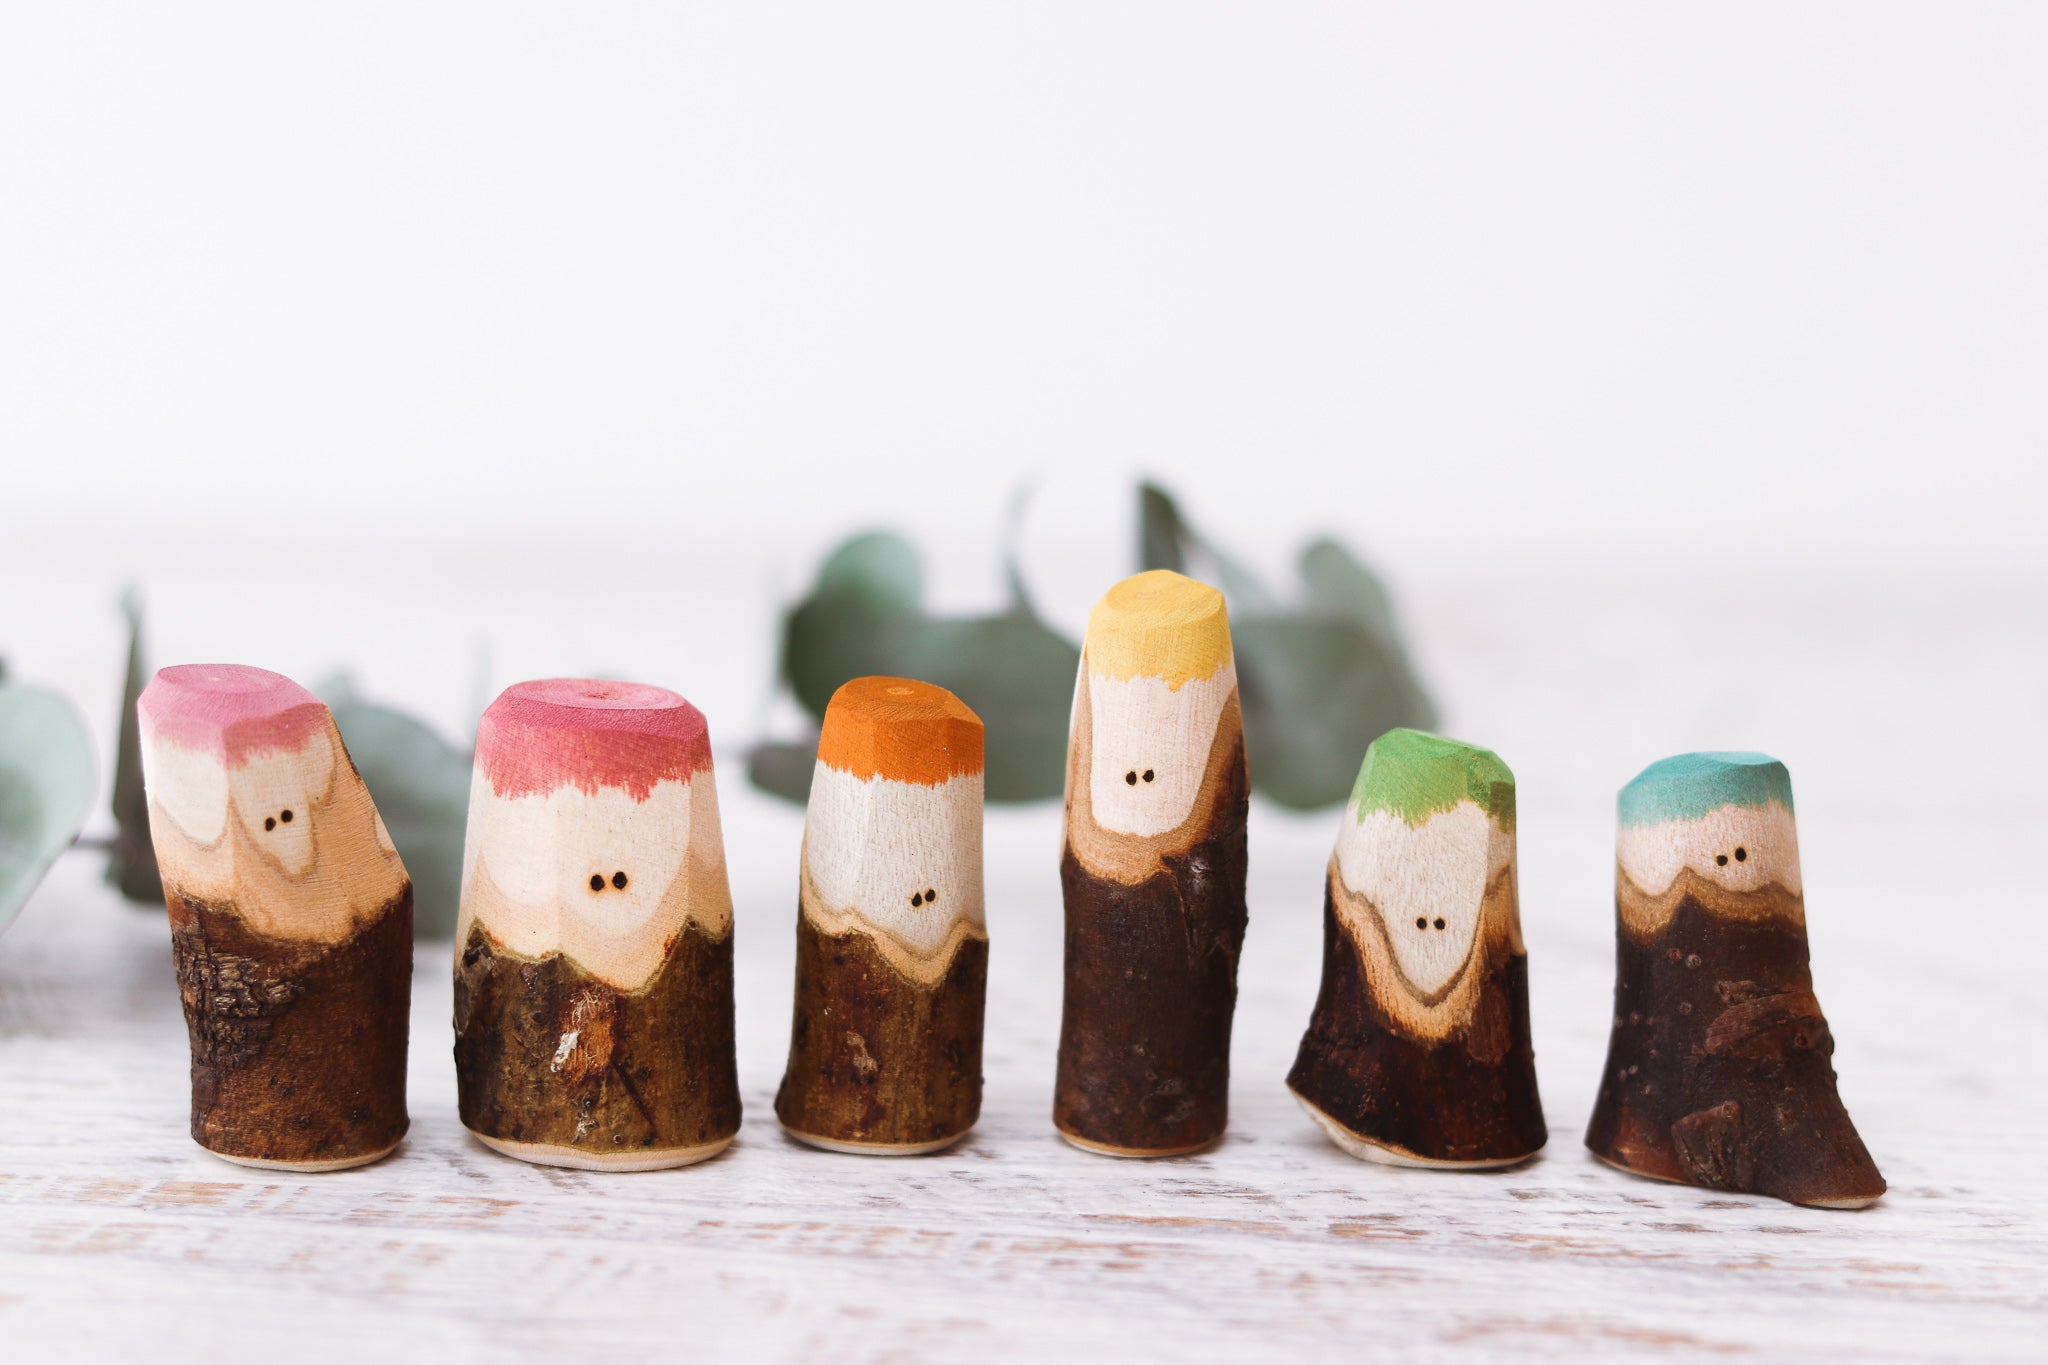 The Mini Tree People - Earth Rainbow Family of 6 by Peekasense - Malaysia